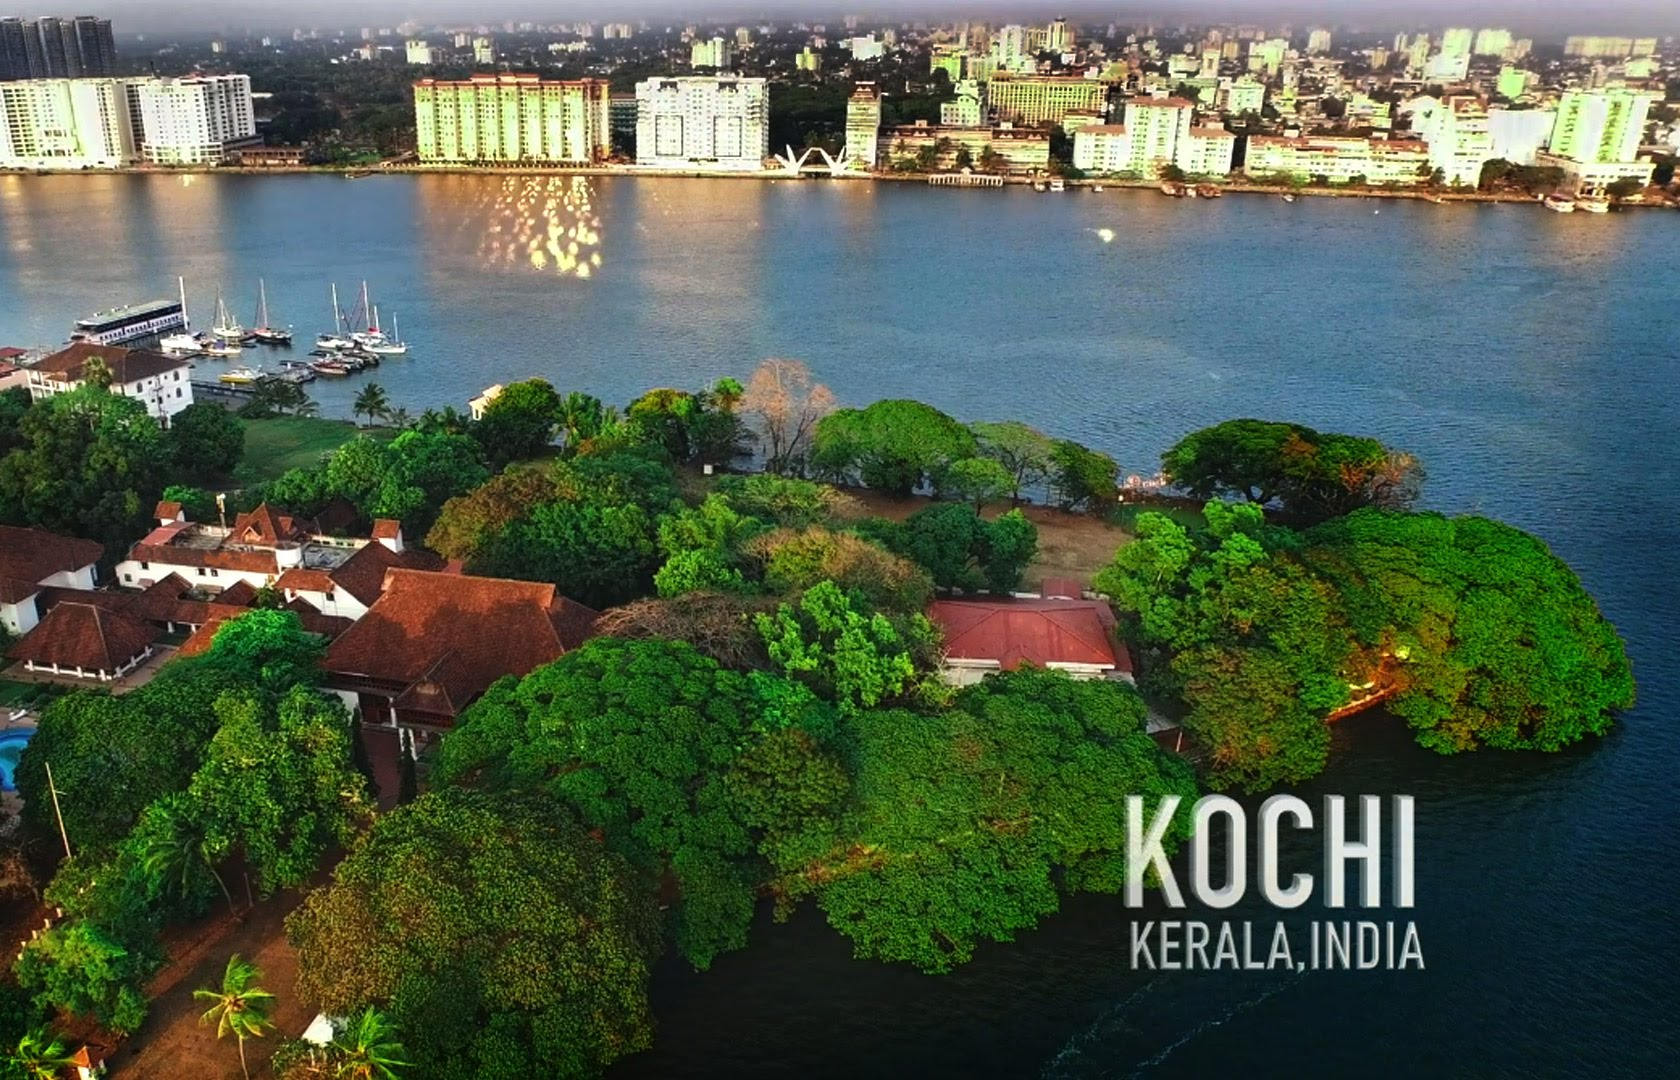 kochi India Images - TravelBrandIndia